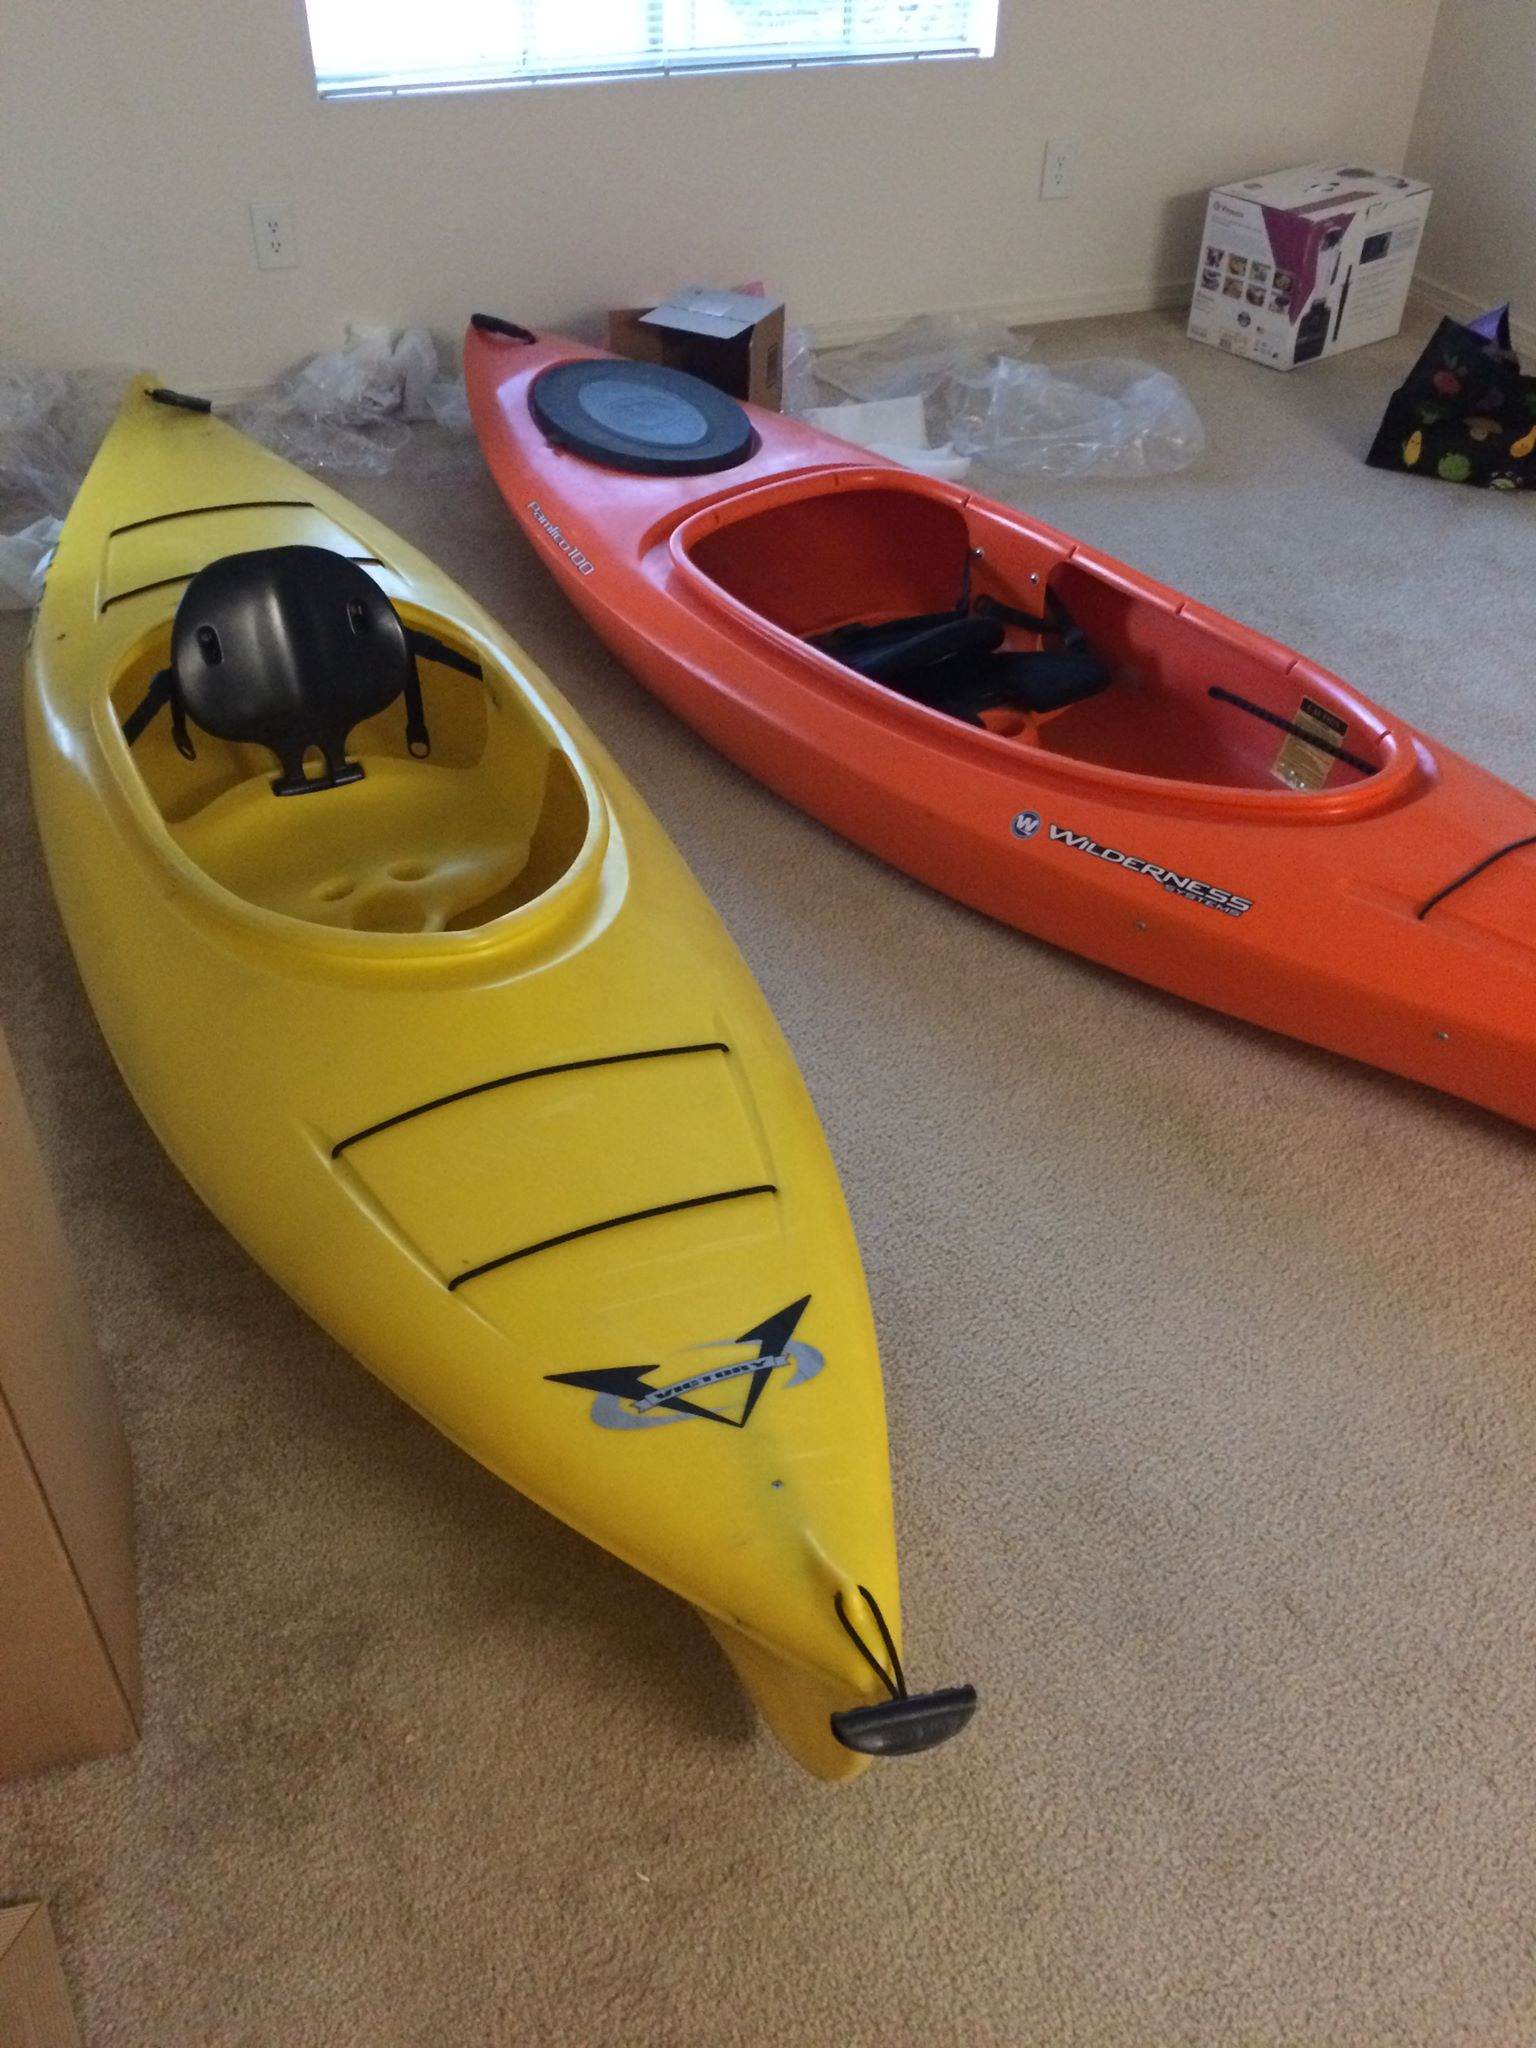 Kayaks are an essential possession. They took up the most space beyond our matress.